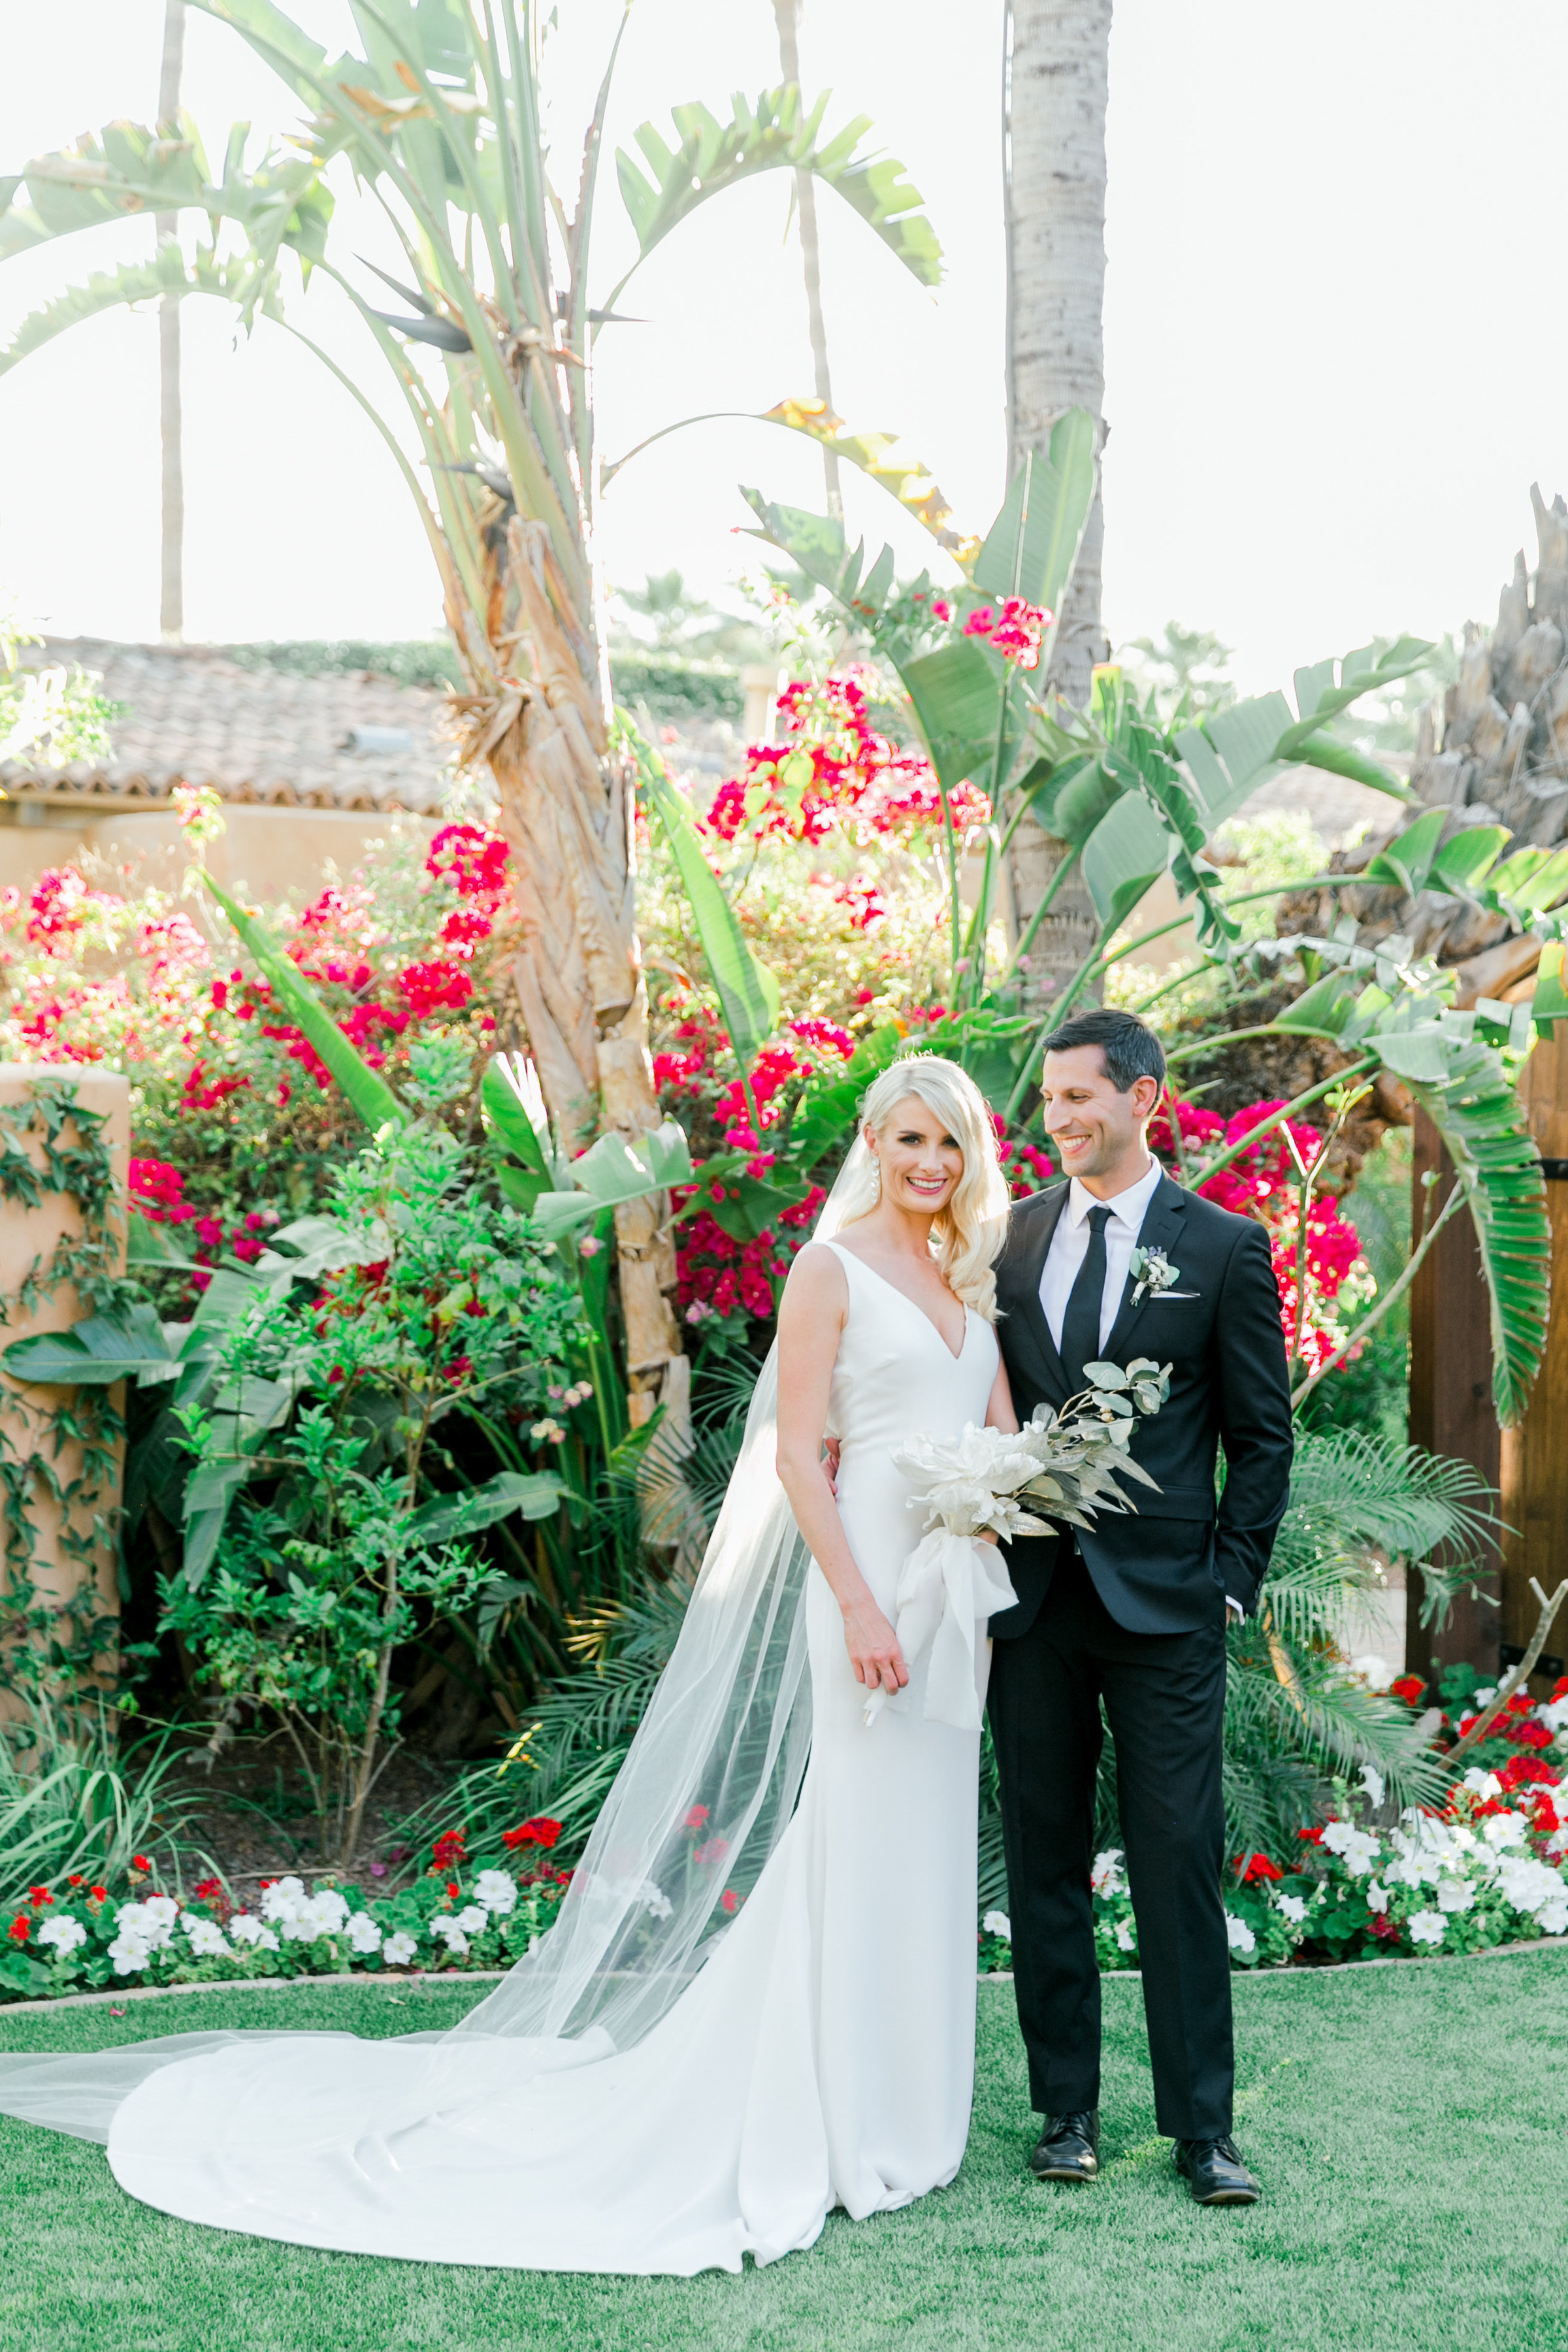 Karlie Colleen Photography - Arizona Wedding - Royal Palms Resort- Alex & Alex-120